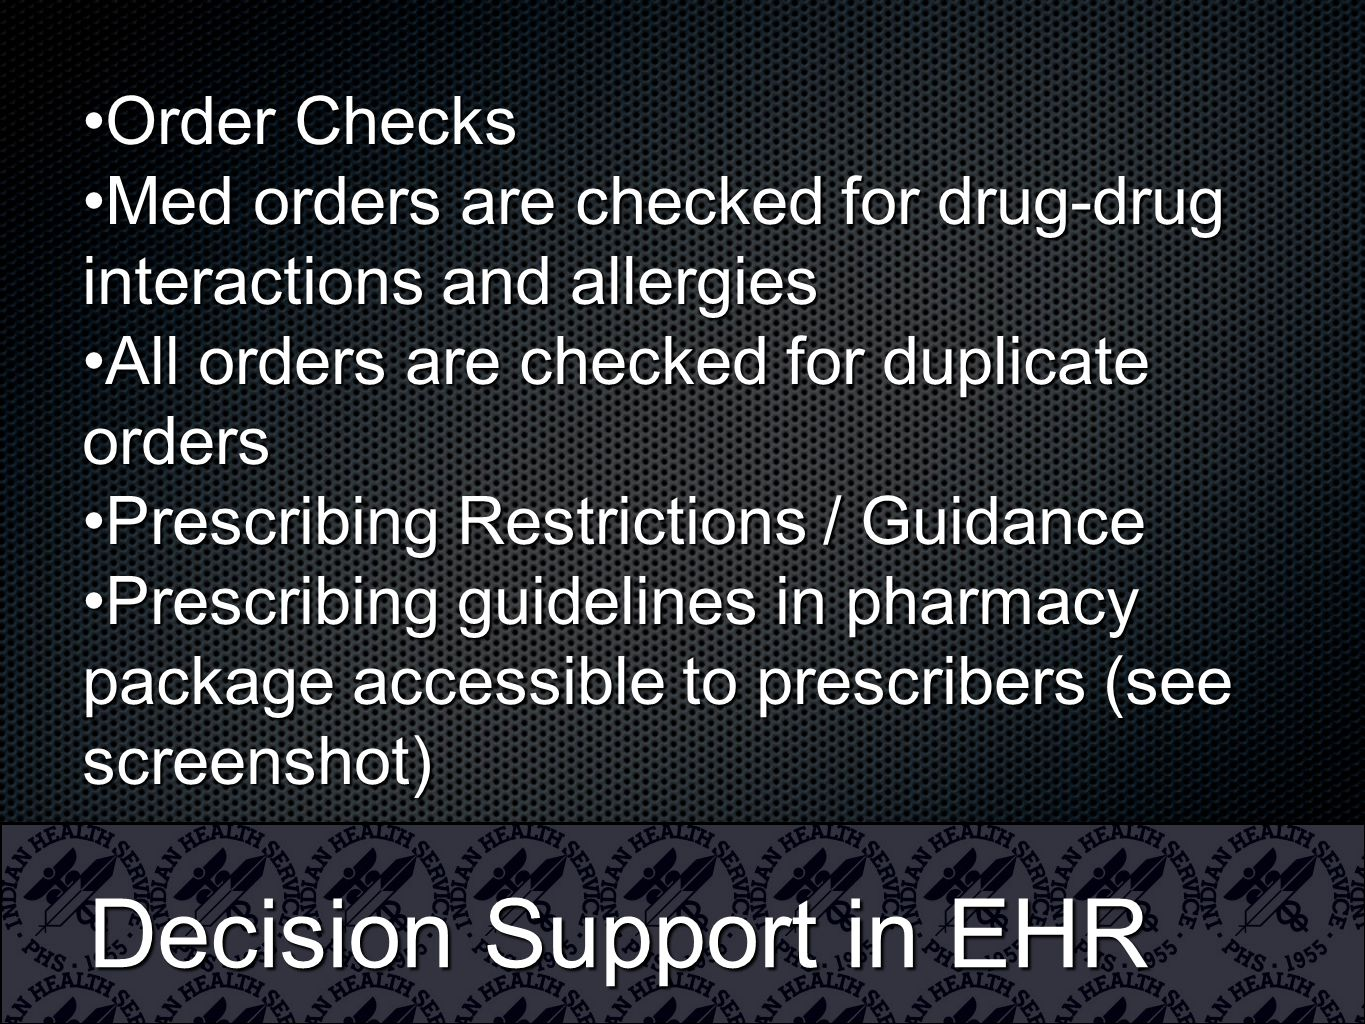 Decision Support in EHR Order ChecksOrder Checks Med orders are checked for drug-drug interactions and allergiesMed orders are checked for drug-drug interactions and allergies All orders are checked for duplicate ordersAll orders are checked for duplicate orders Prescribing Restrictions / GuidancePrescribing Restrictions / Guidance Prescribing guidelines in pharmacy package accessible to prescribers (see screenshot)Prescribing guidelines in pharmacy package accessible to prescribers (see screenshot)